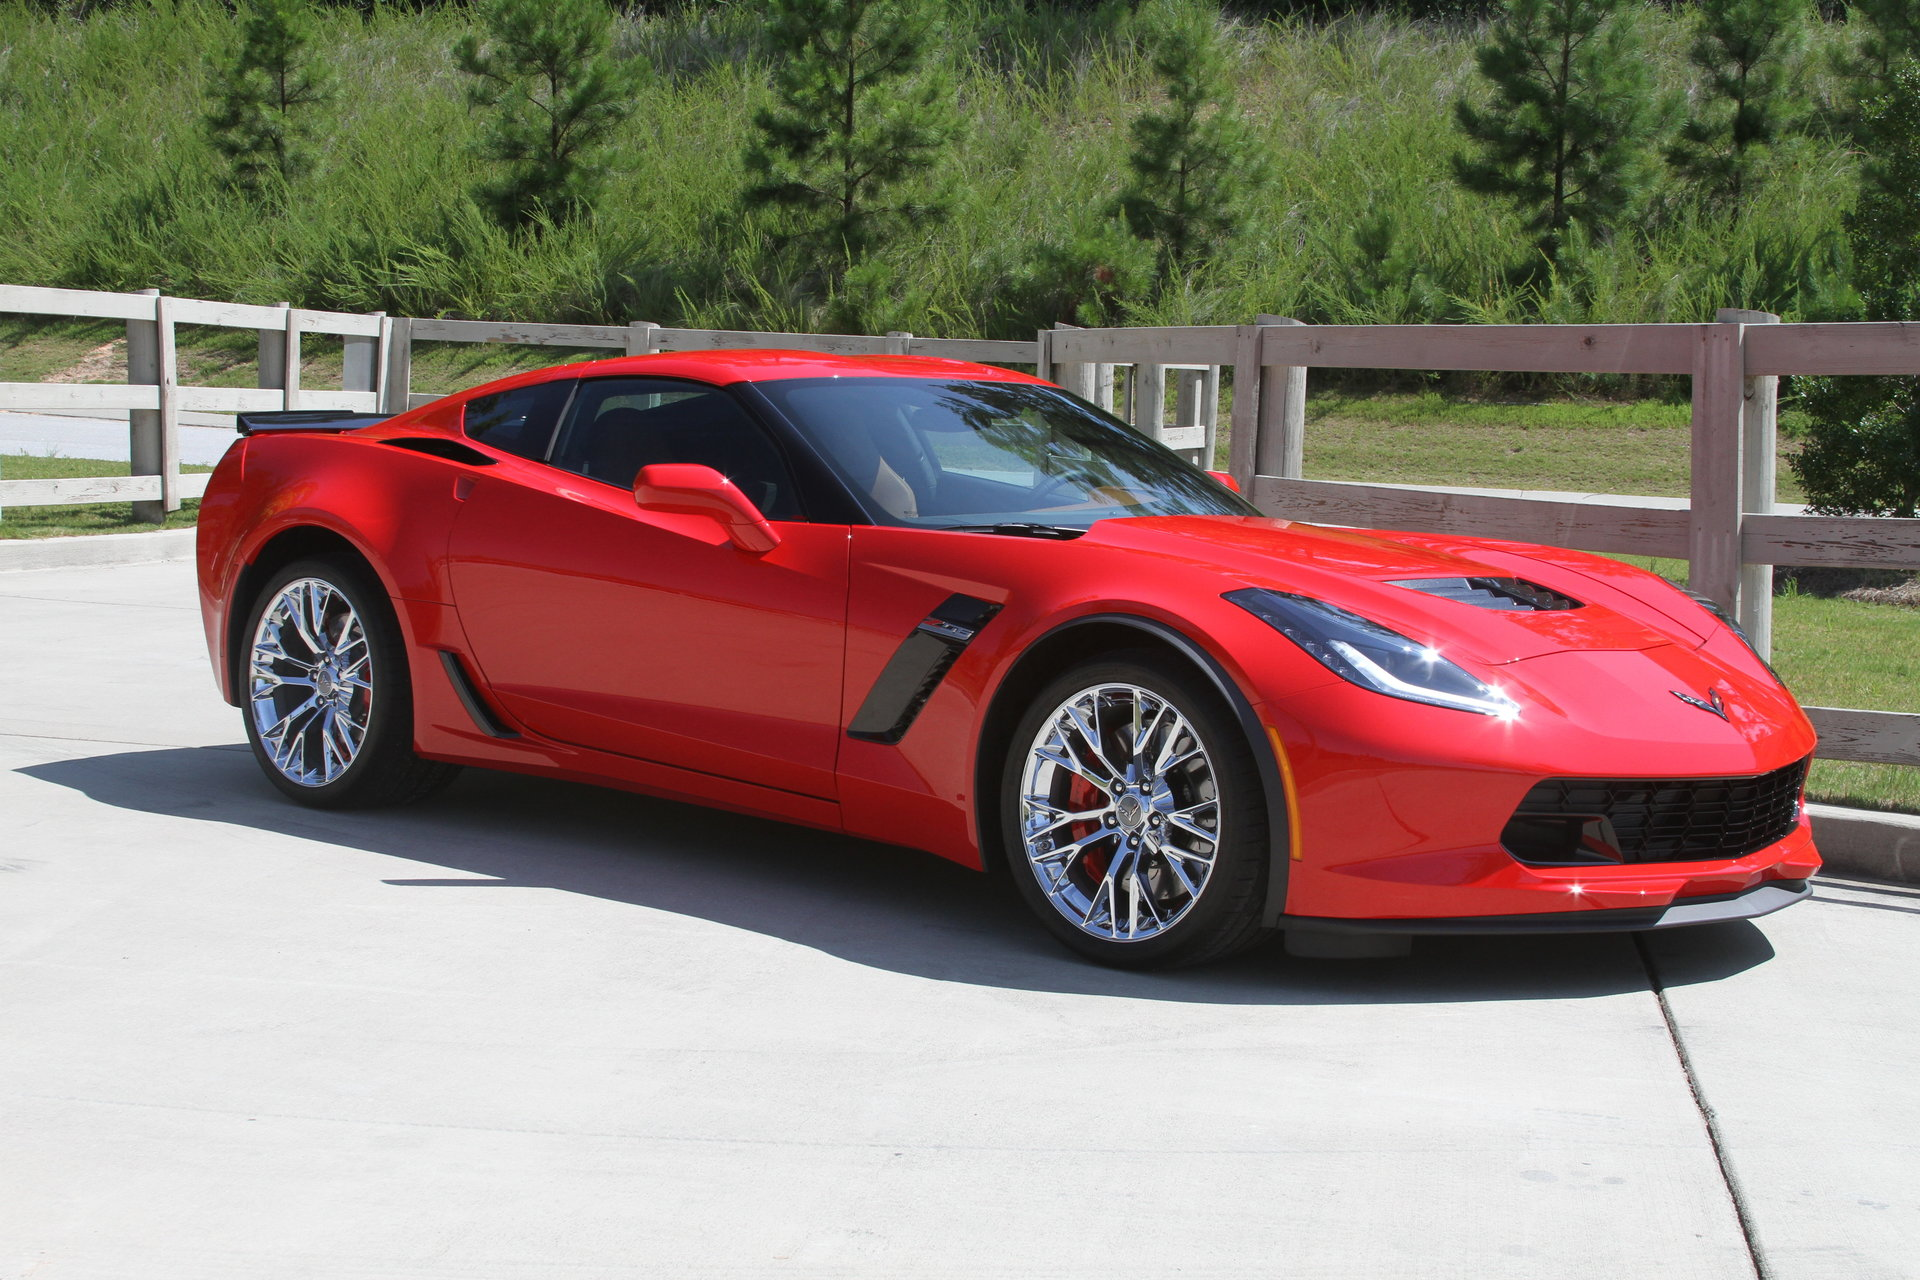 16078db53e8e hd 2015 chevrolet corvette z06 3lz